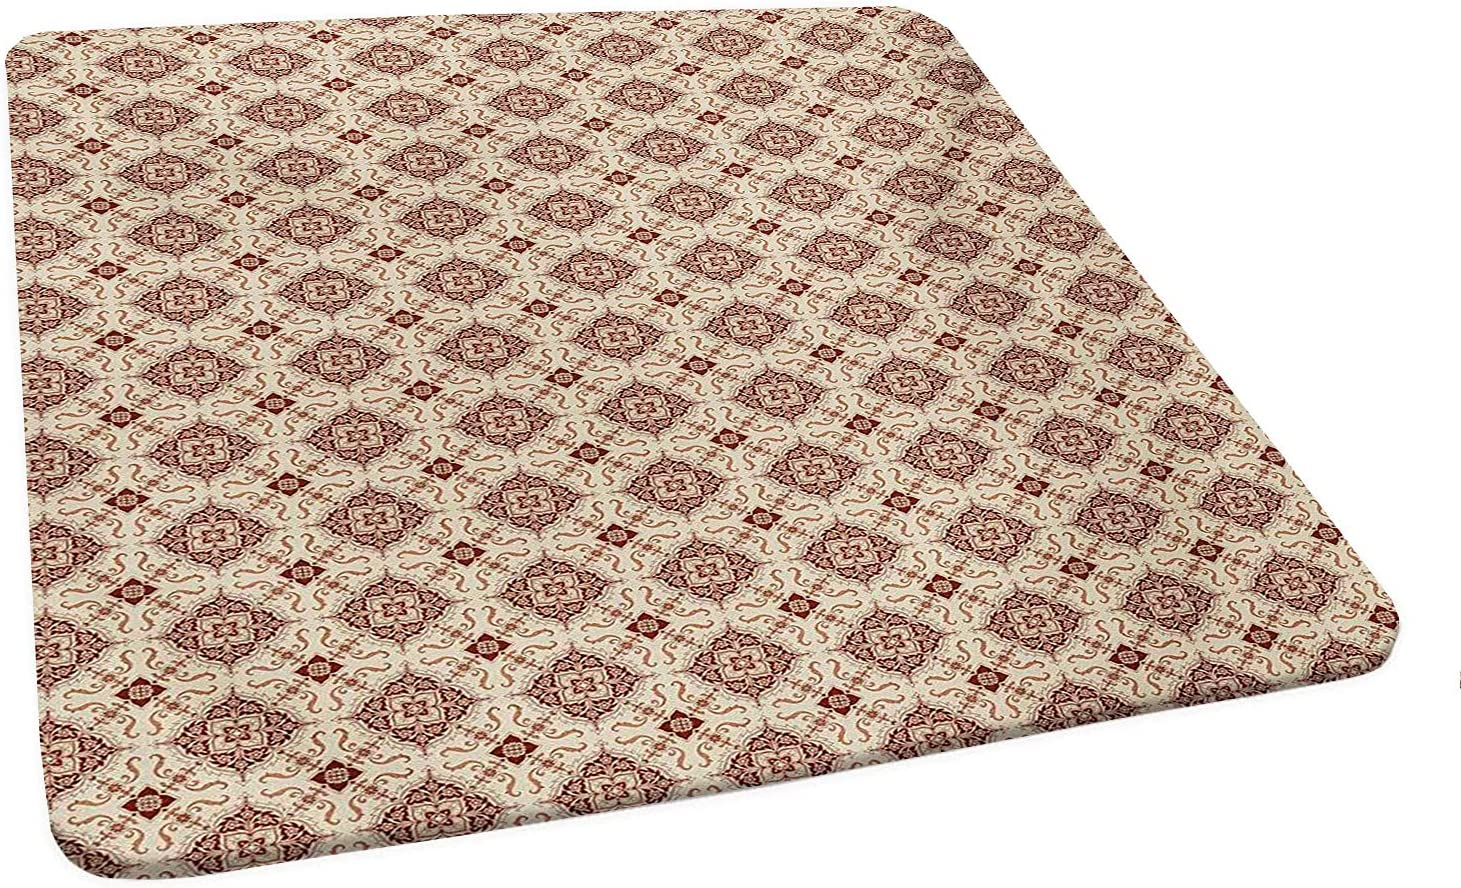 Square Vintage Tablecloth Victorian Pattern Ancien Cash special Max 76% OFF price Inspirations